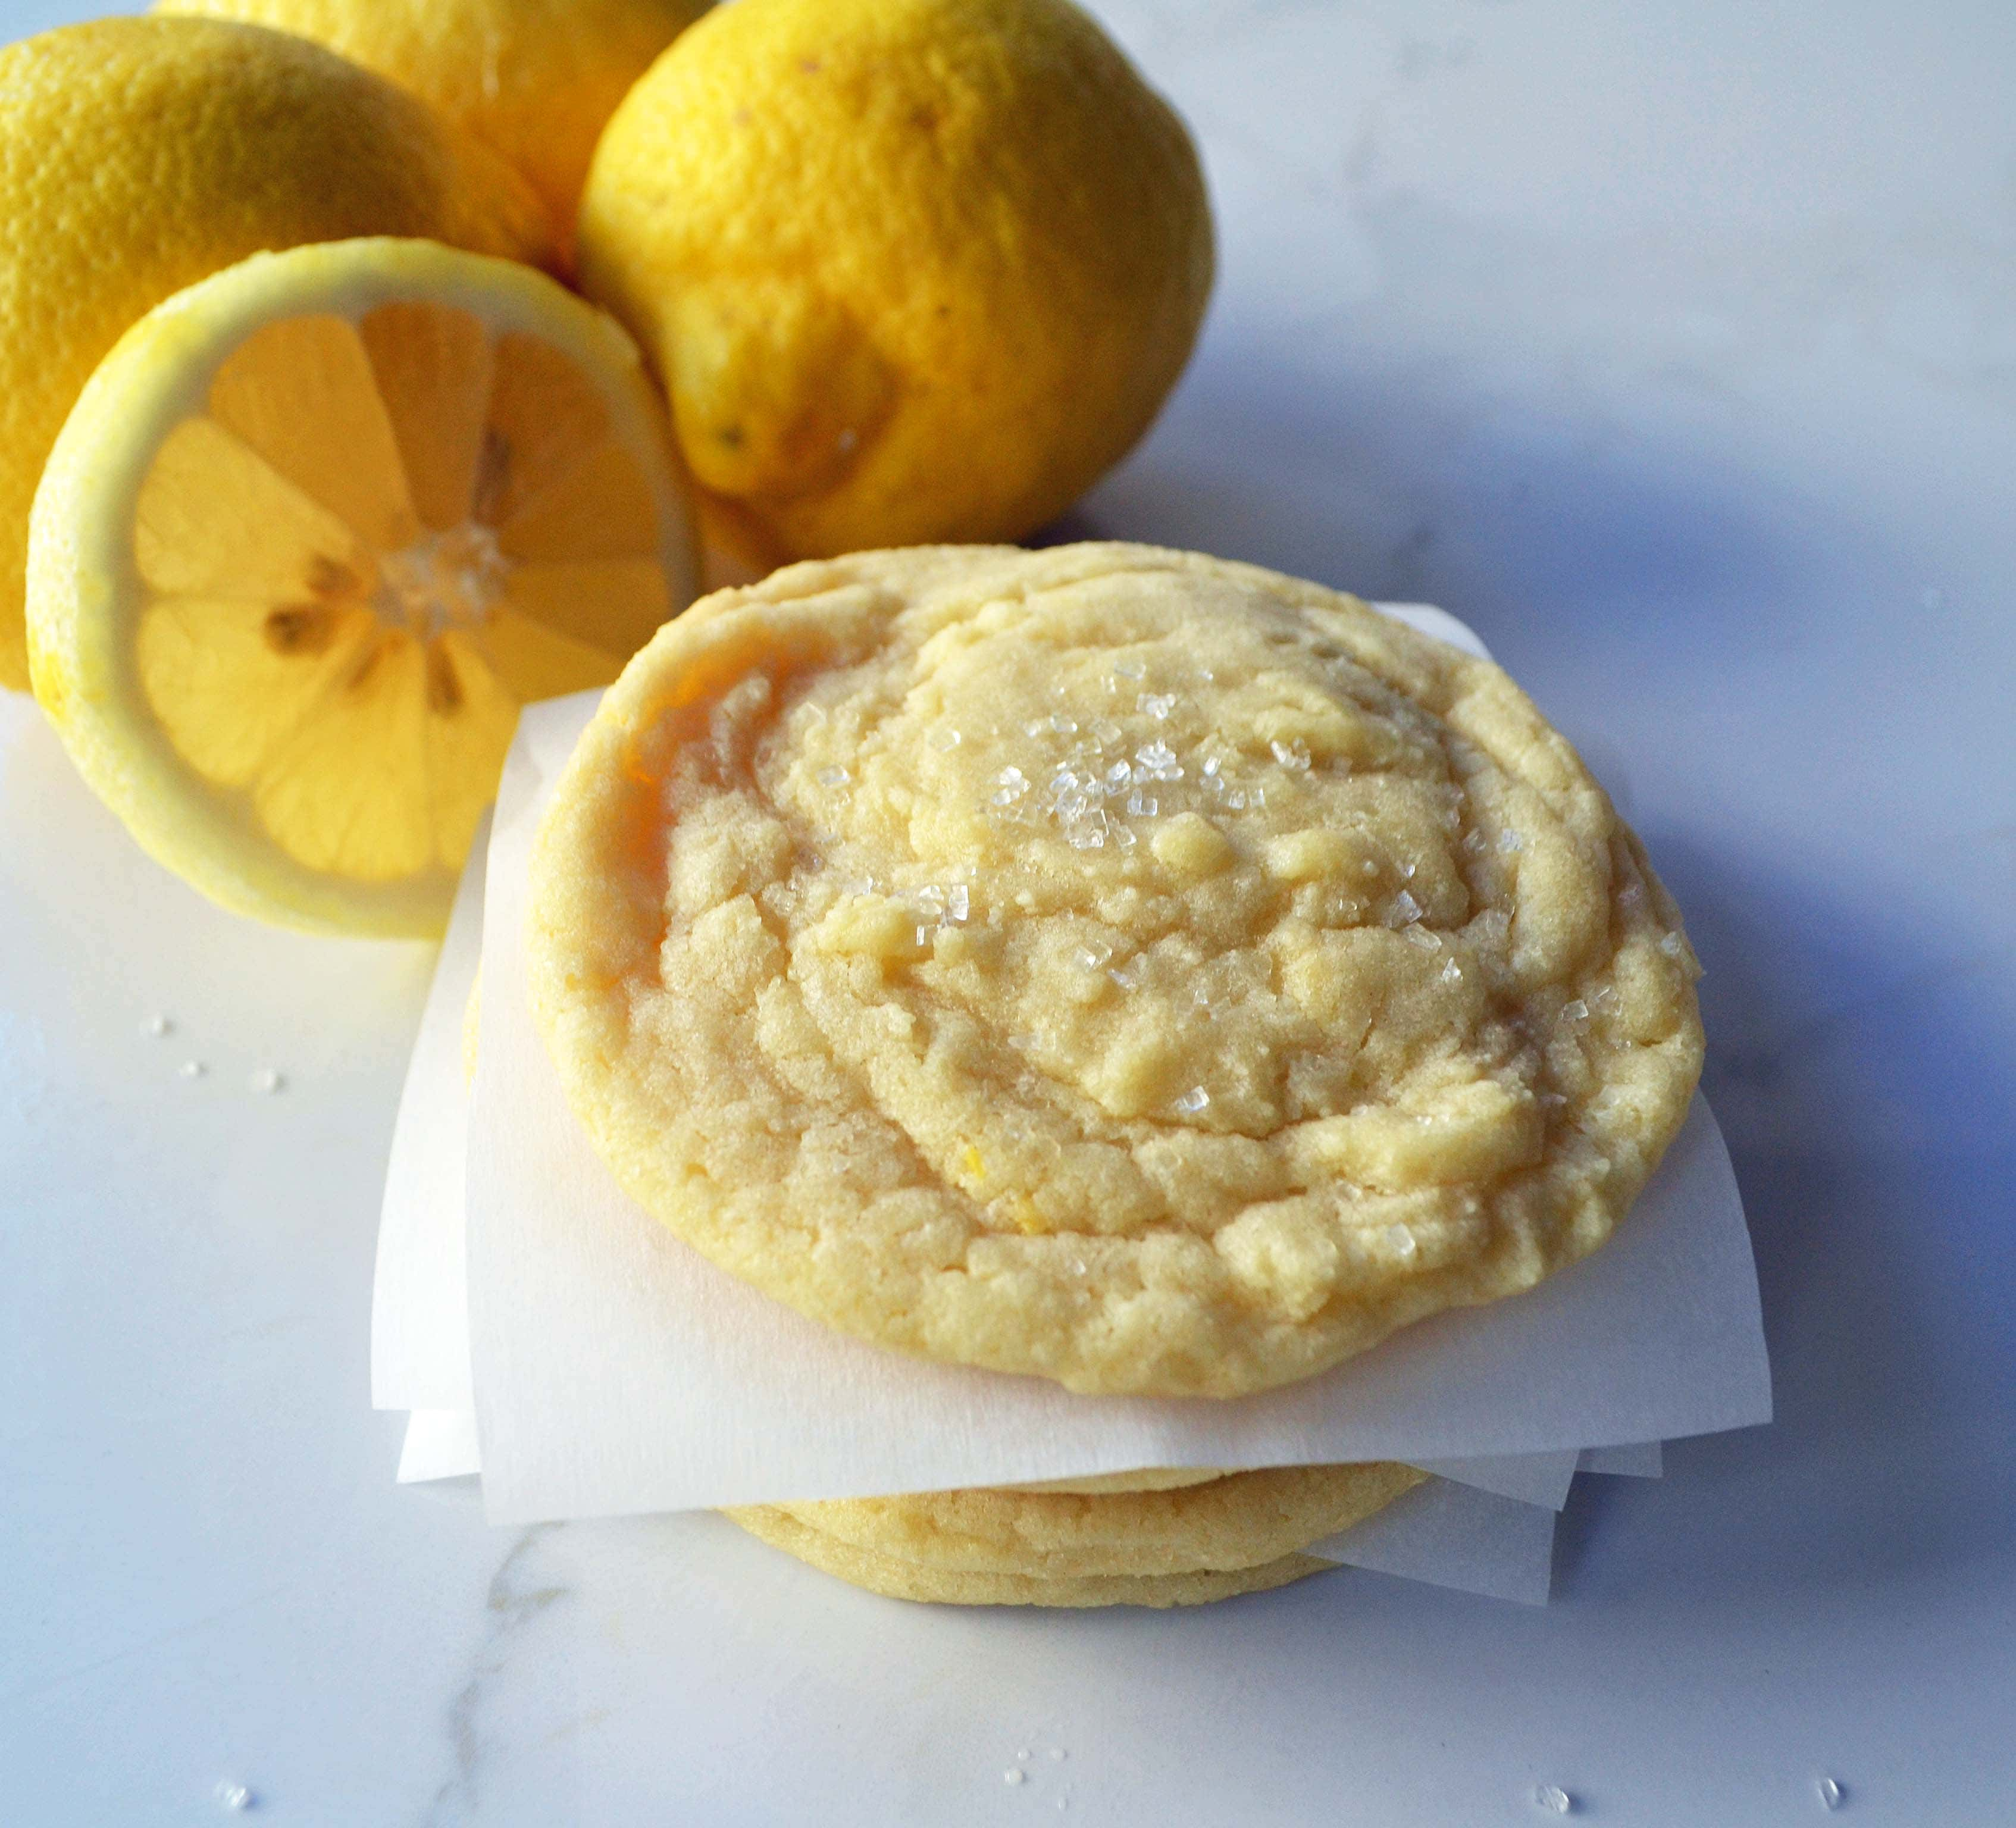 Lemon Sugar Cookies. Soft lemon zest cookies are one of the most popular and crowd pleasing cookies. www.modernhoney.com